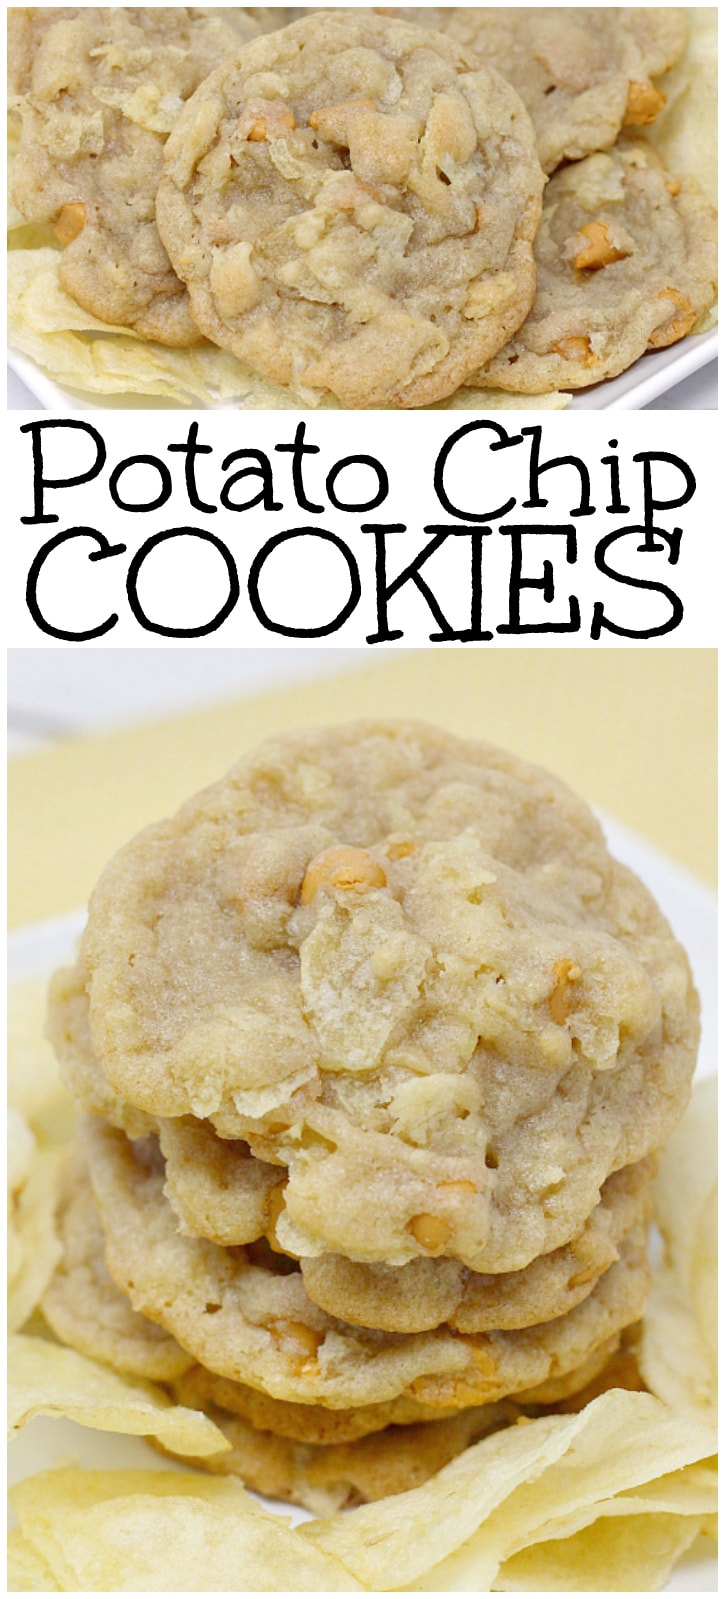 Potato Chip Cookies are the perfect combination of salty and sweet! The butterscotch chips and potato chips pair together so well in these cookies! Easy cookie recipe from Butter With A Side of Bread